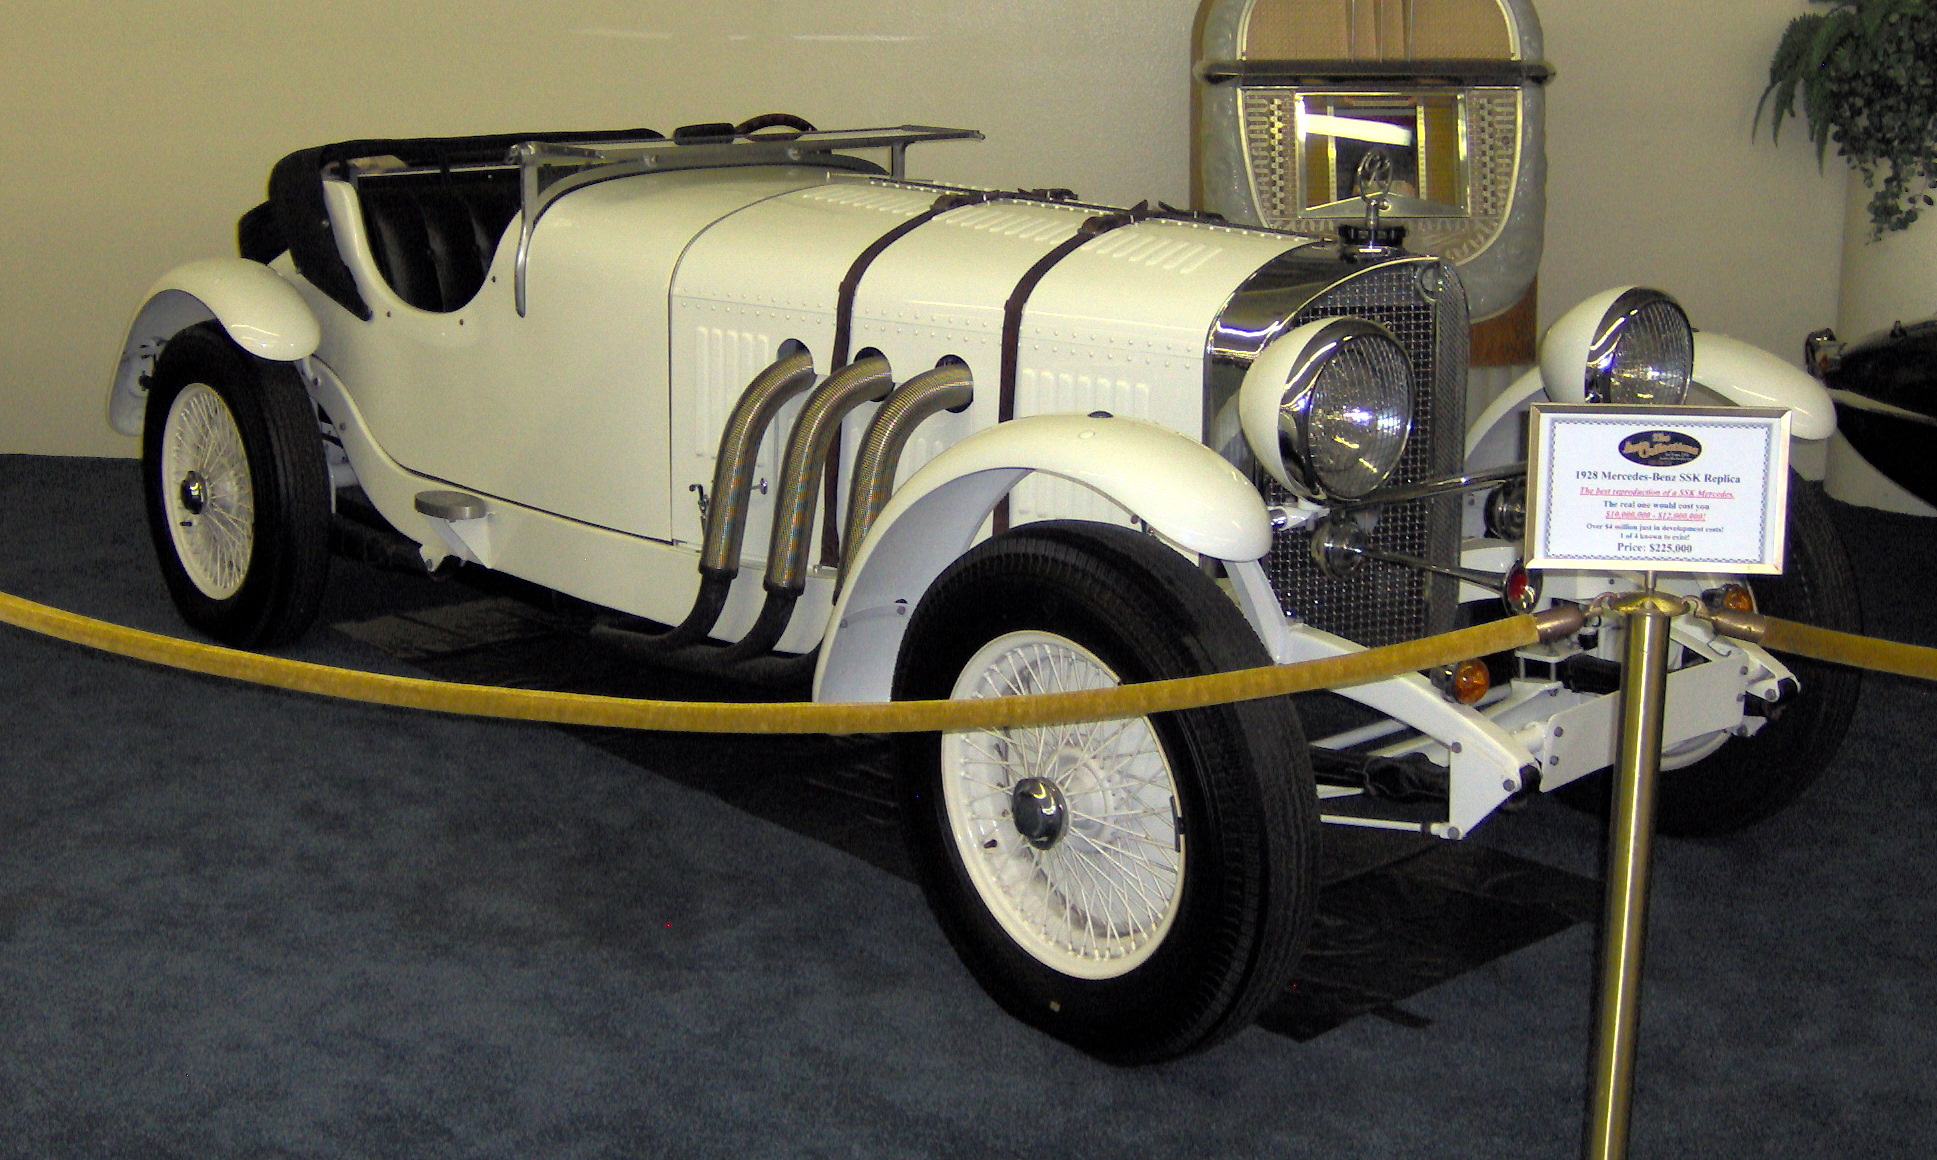 mercedes-benz replica